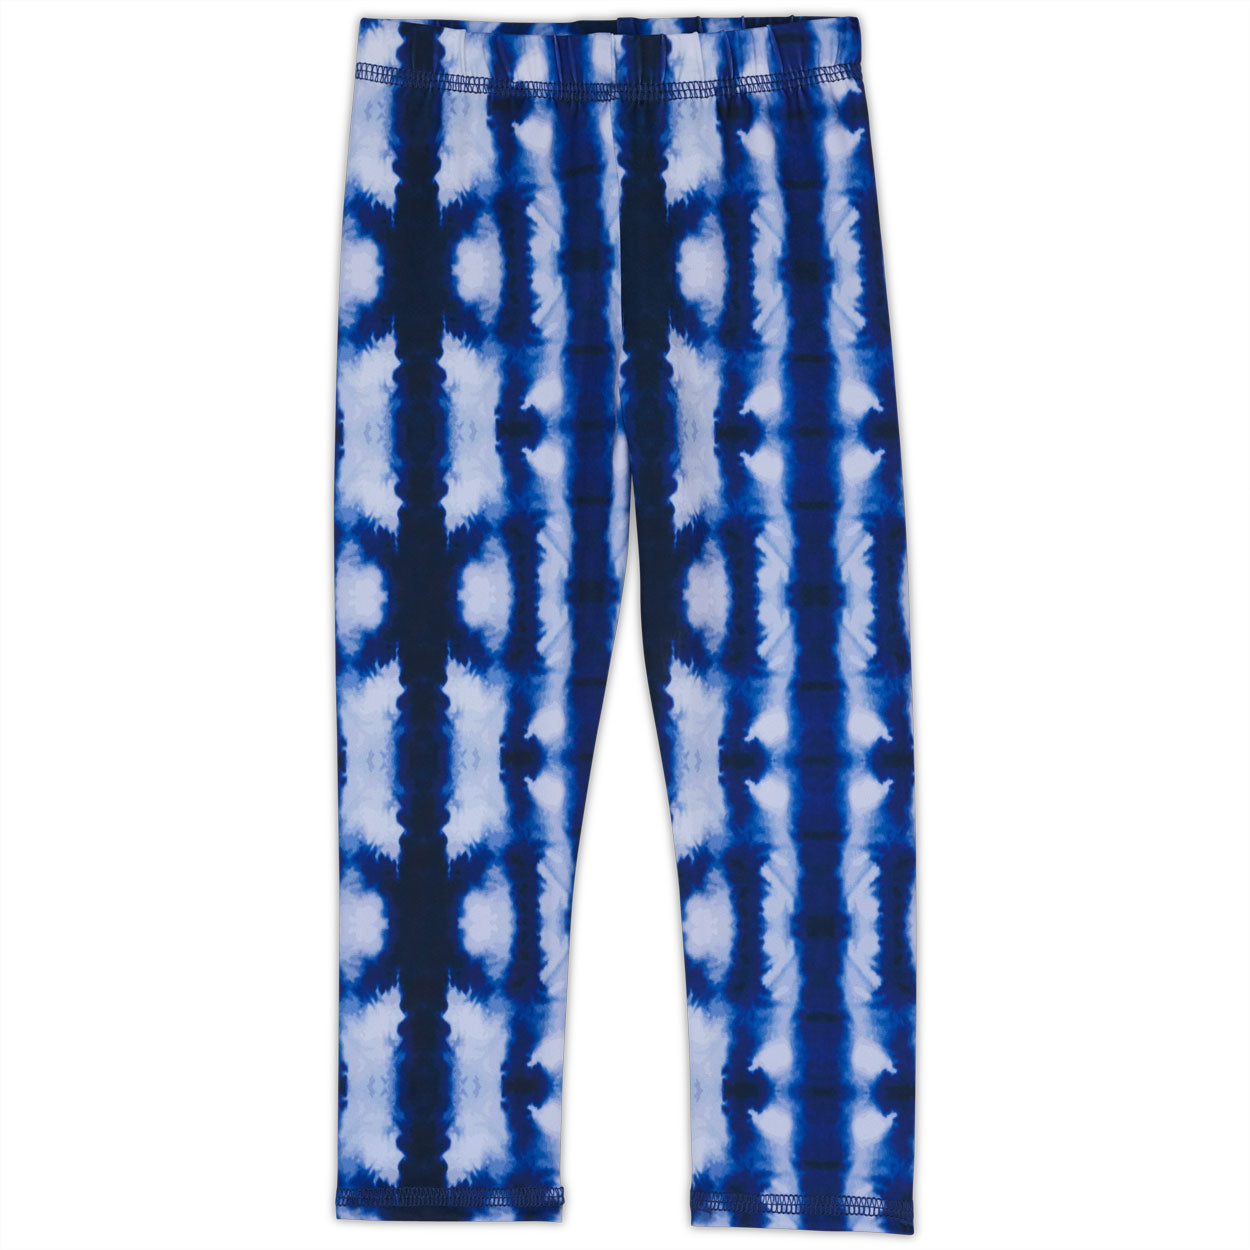 Shibori Hybrid Kids Leggings UPF 50+